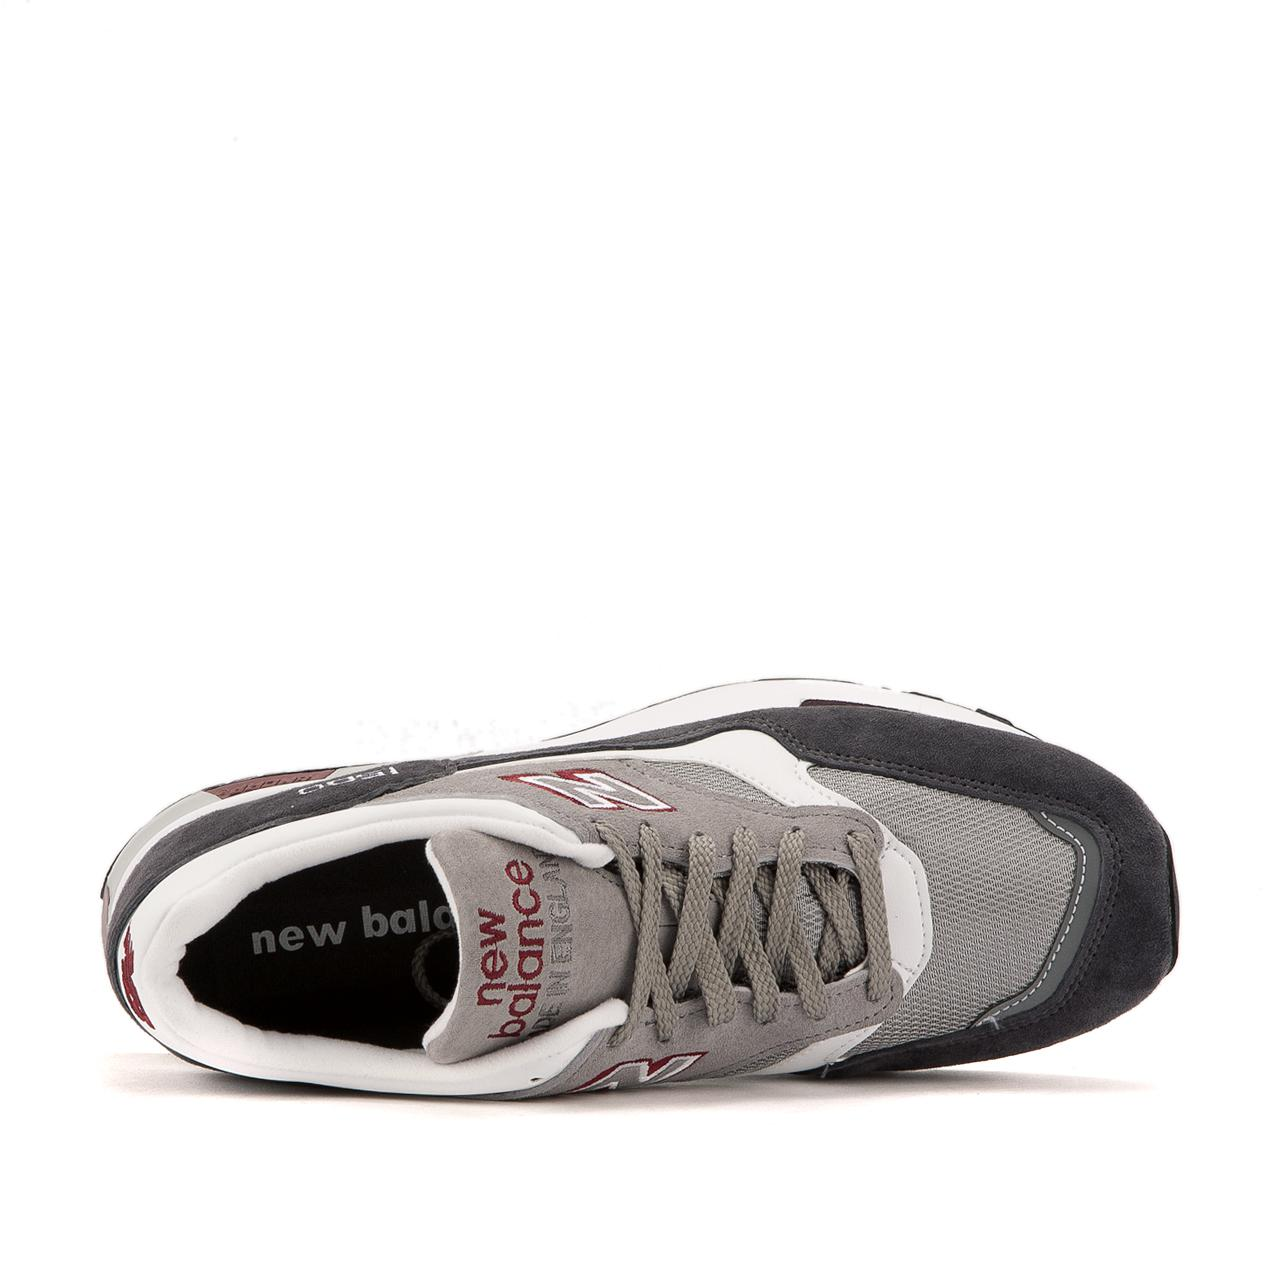 New Balance Leather M 1500 Grw Made In